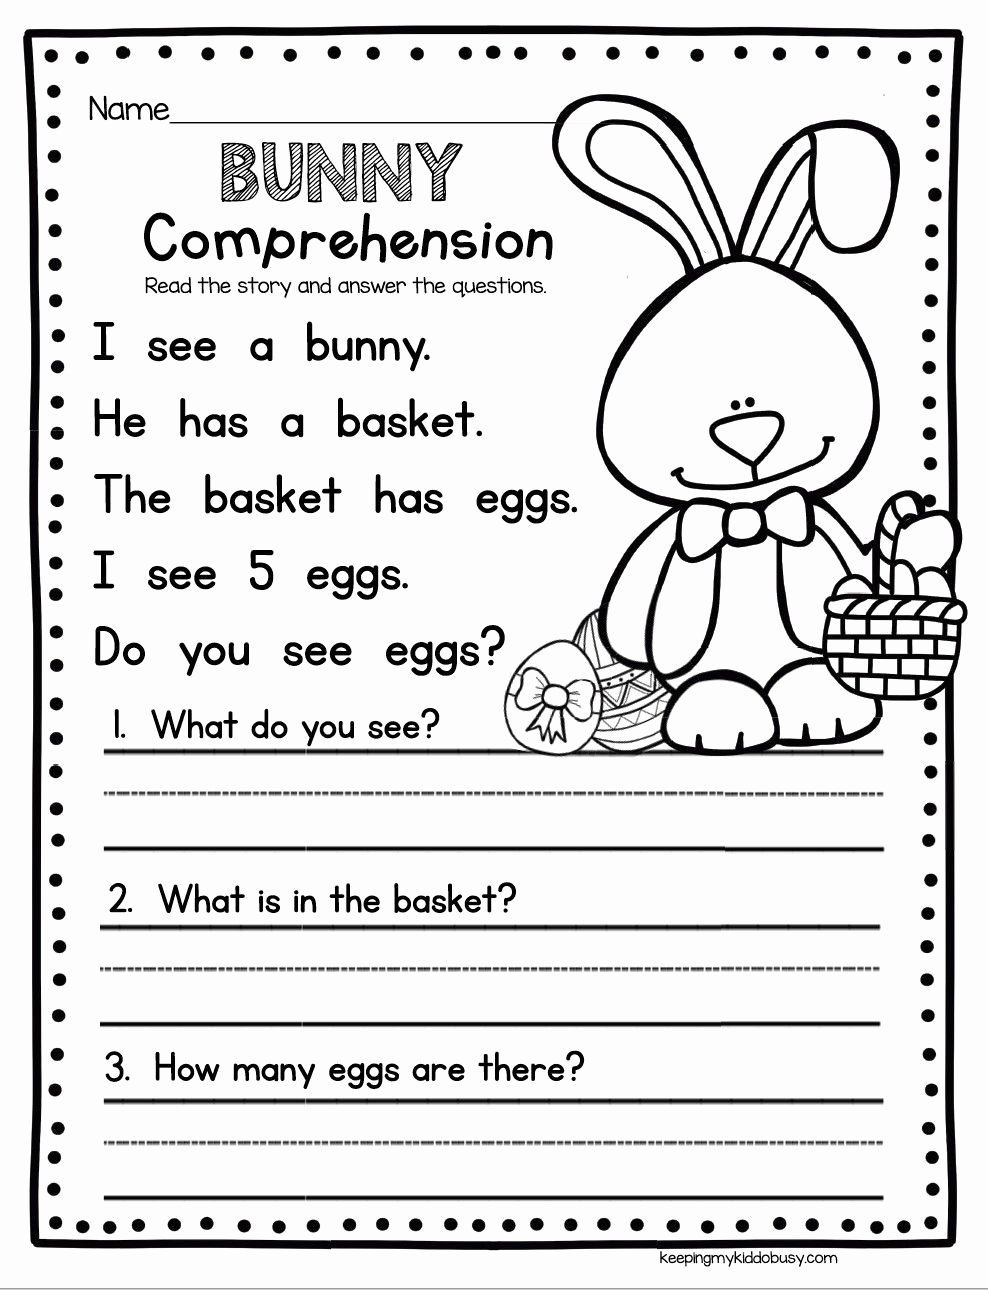 Easy Reading Worksheets for Preschoolers Inspirational Worksheet Easy Science Experiments to Do at Home